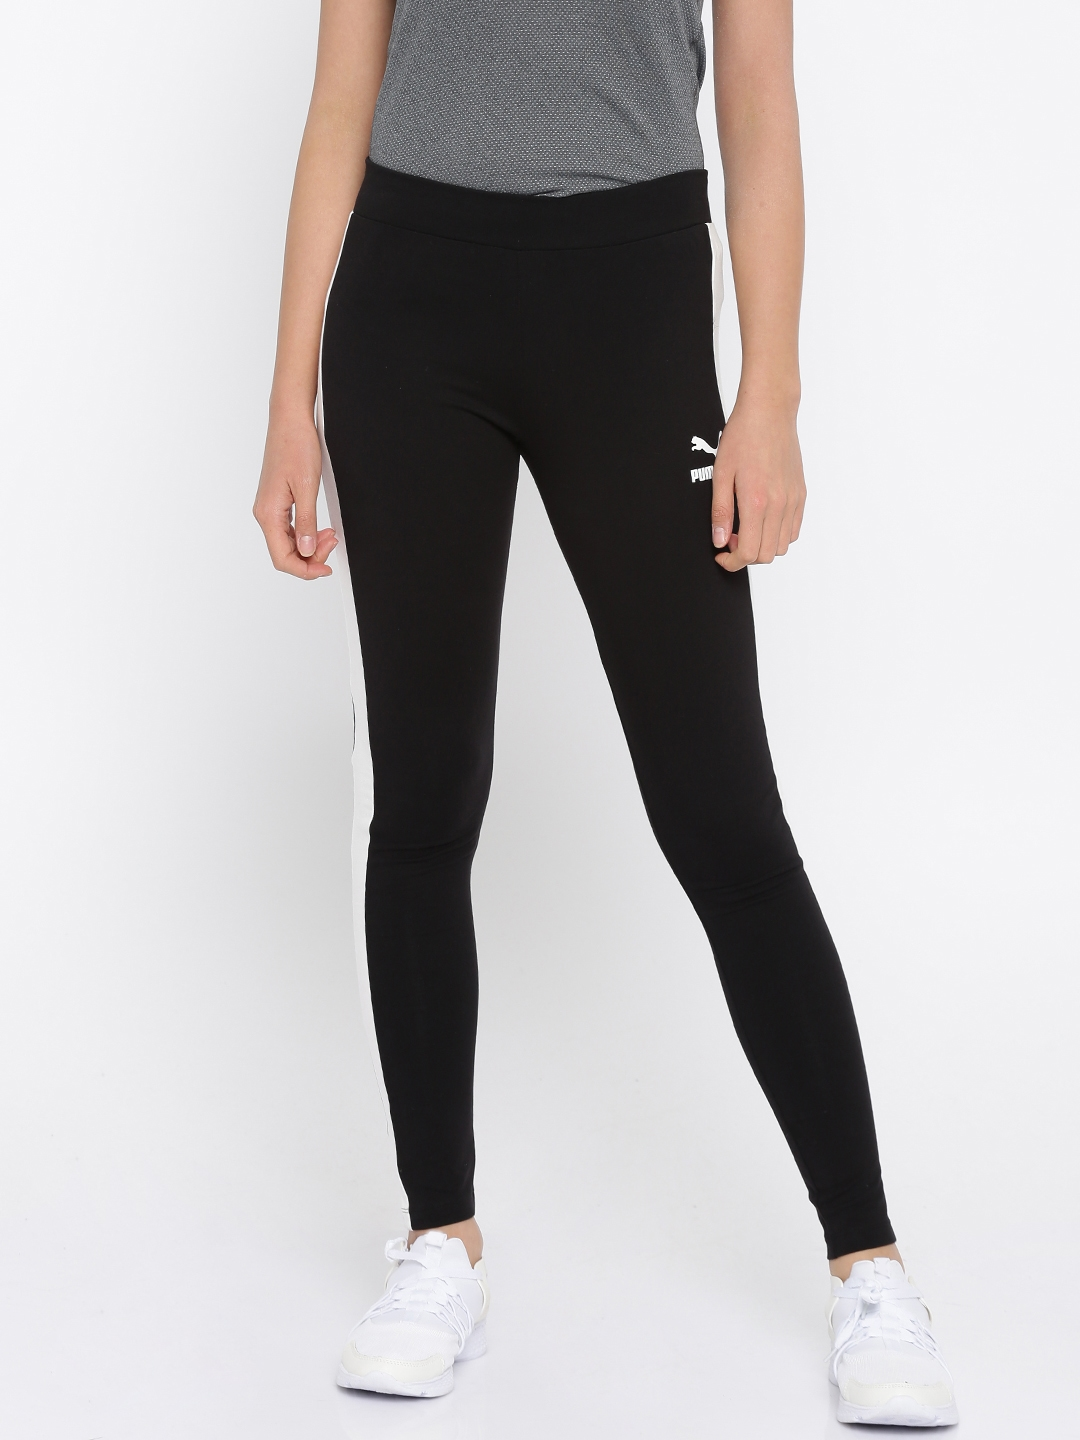 a62a9d1b1a266 Buy Puma Women Black Archive Logo T7 Tights - Tights for Women ...